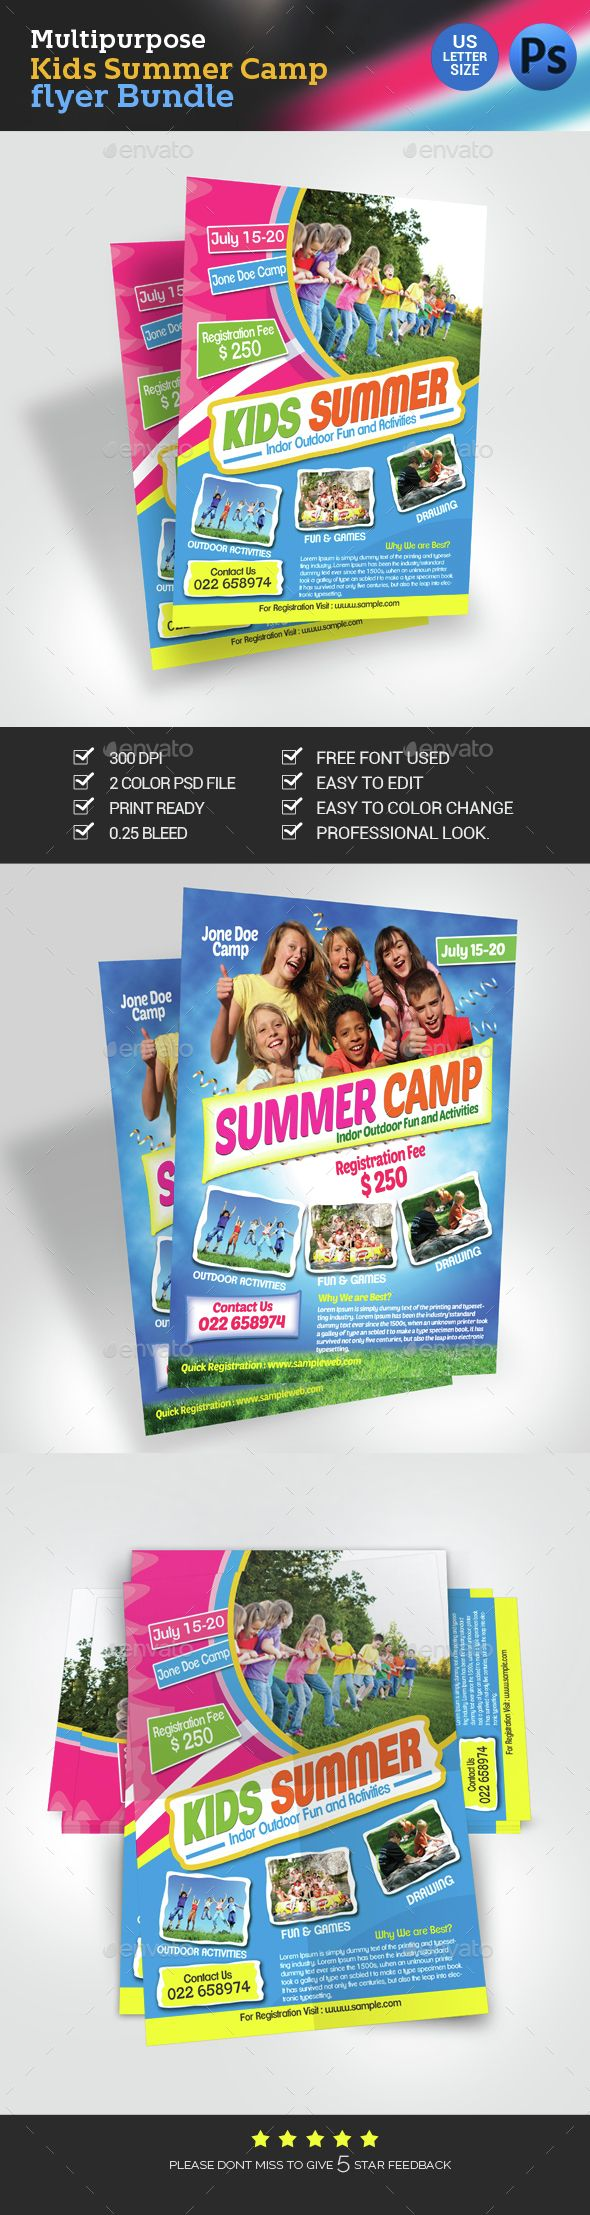 summer camp brochure template free download - kids summer camp flyer bundle kid flyer template and camps